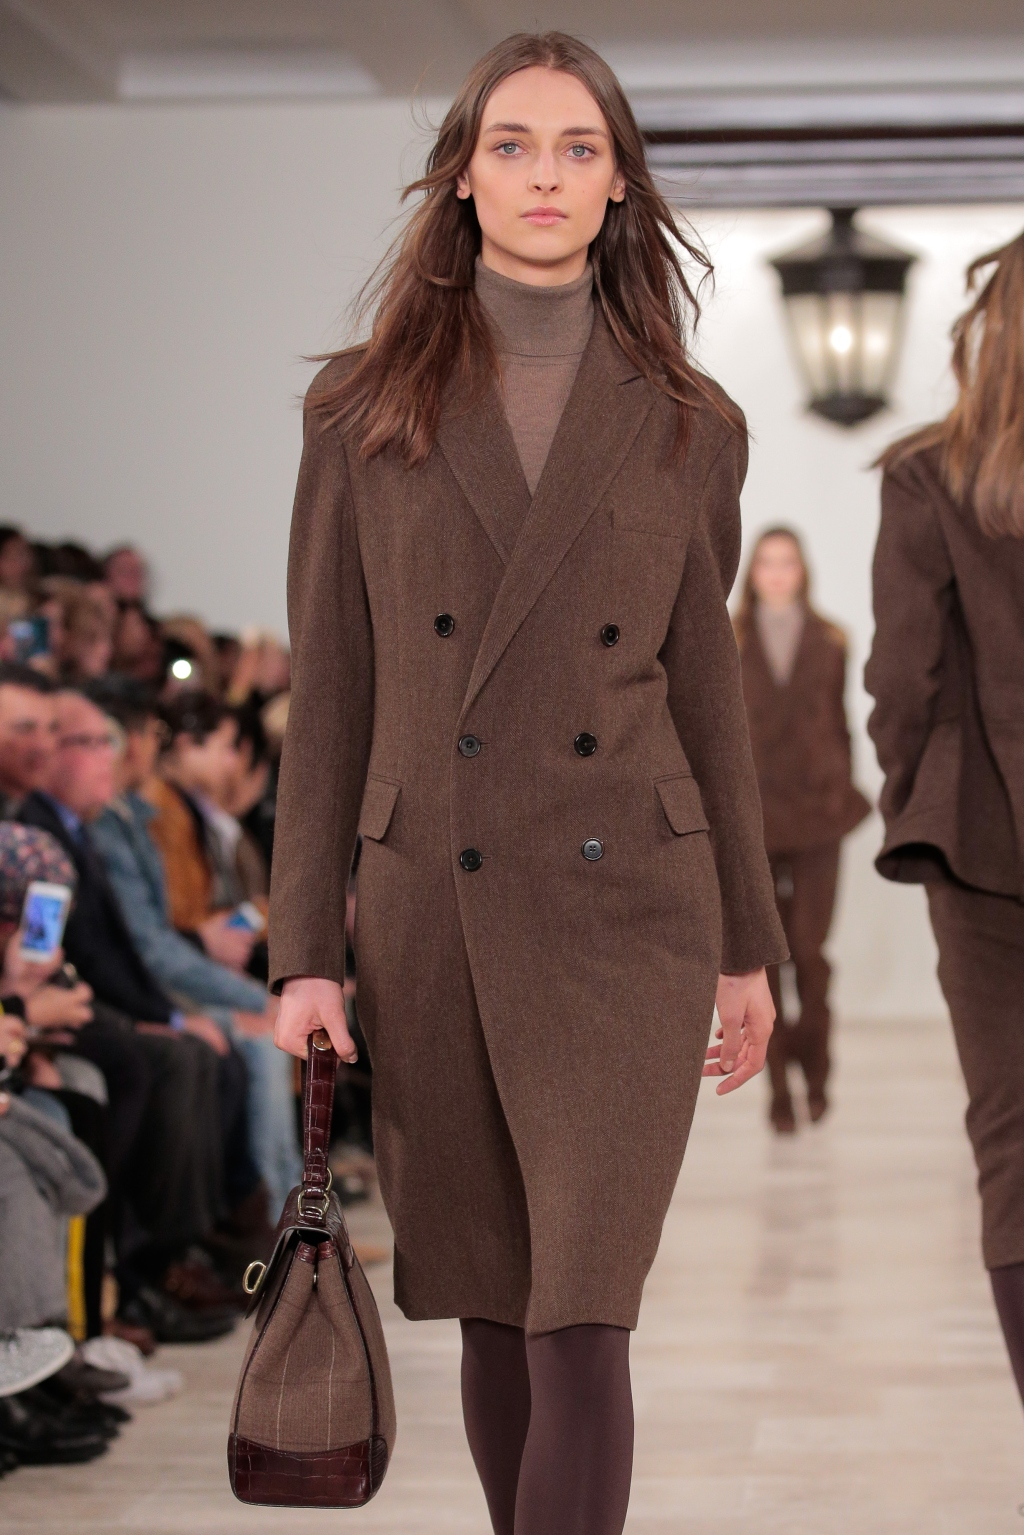 Ralph Lauren - Runway - Fall 2016 New York Fashion Week: The Shows